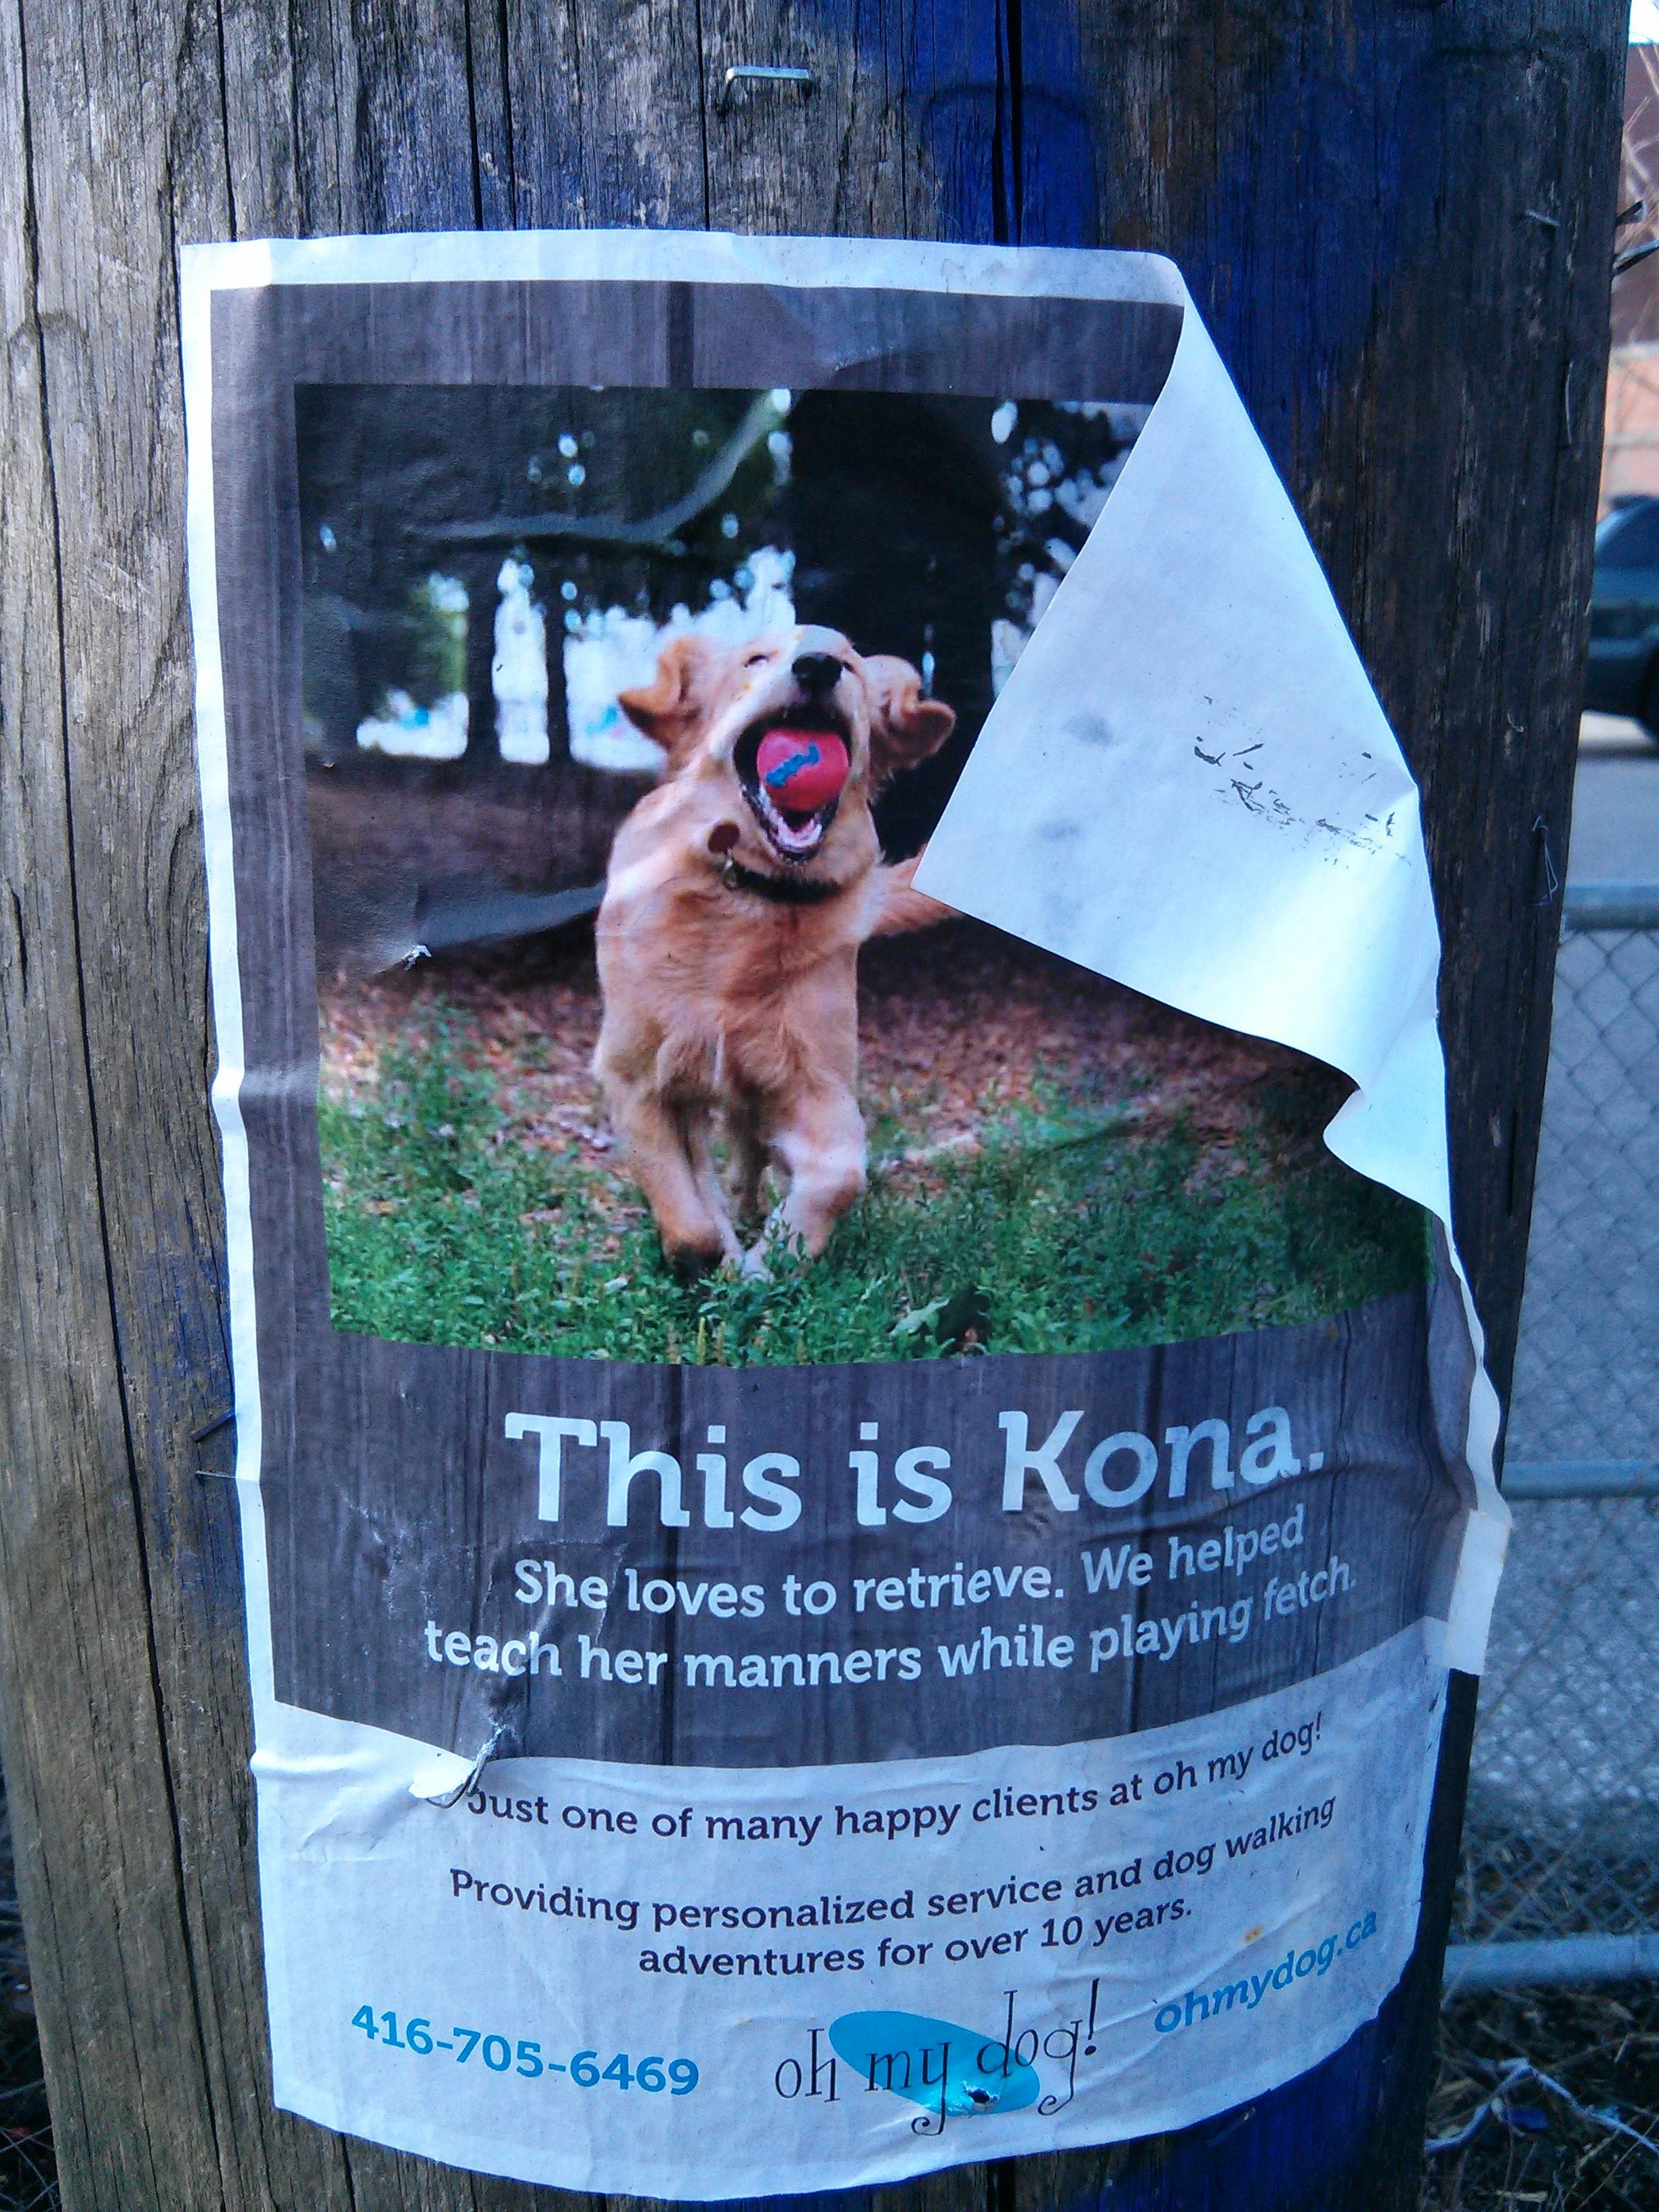 5 marketing lessons from the neighborhood dog walker